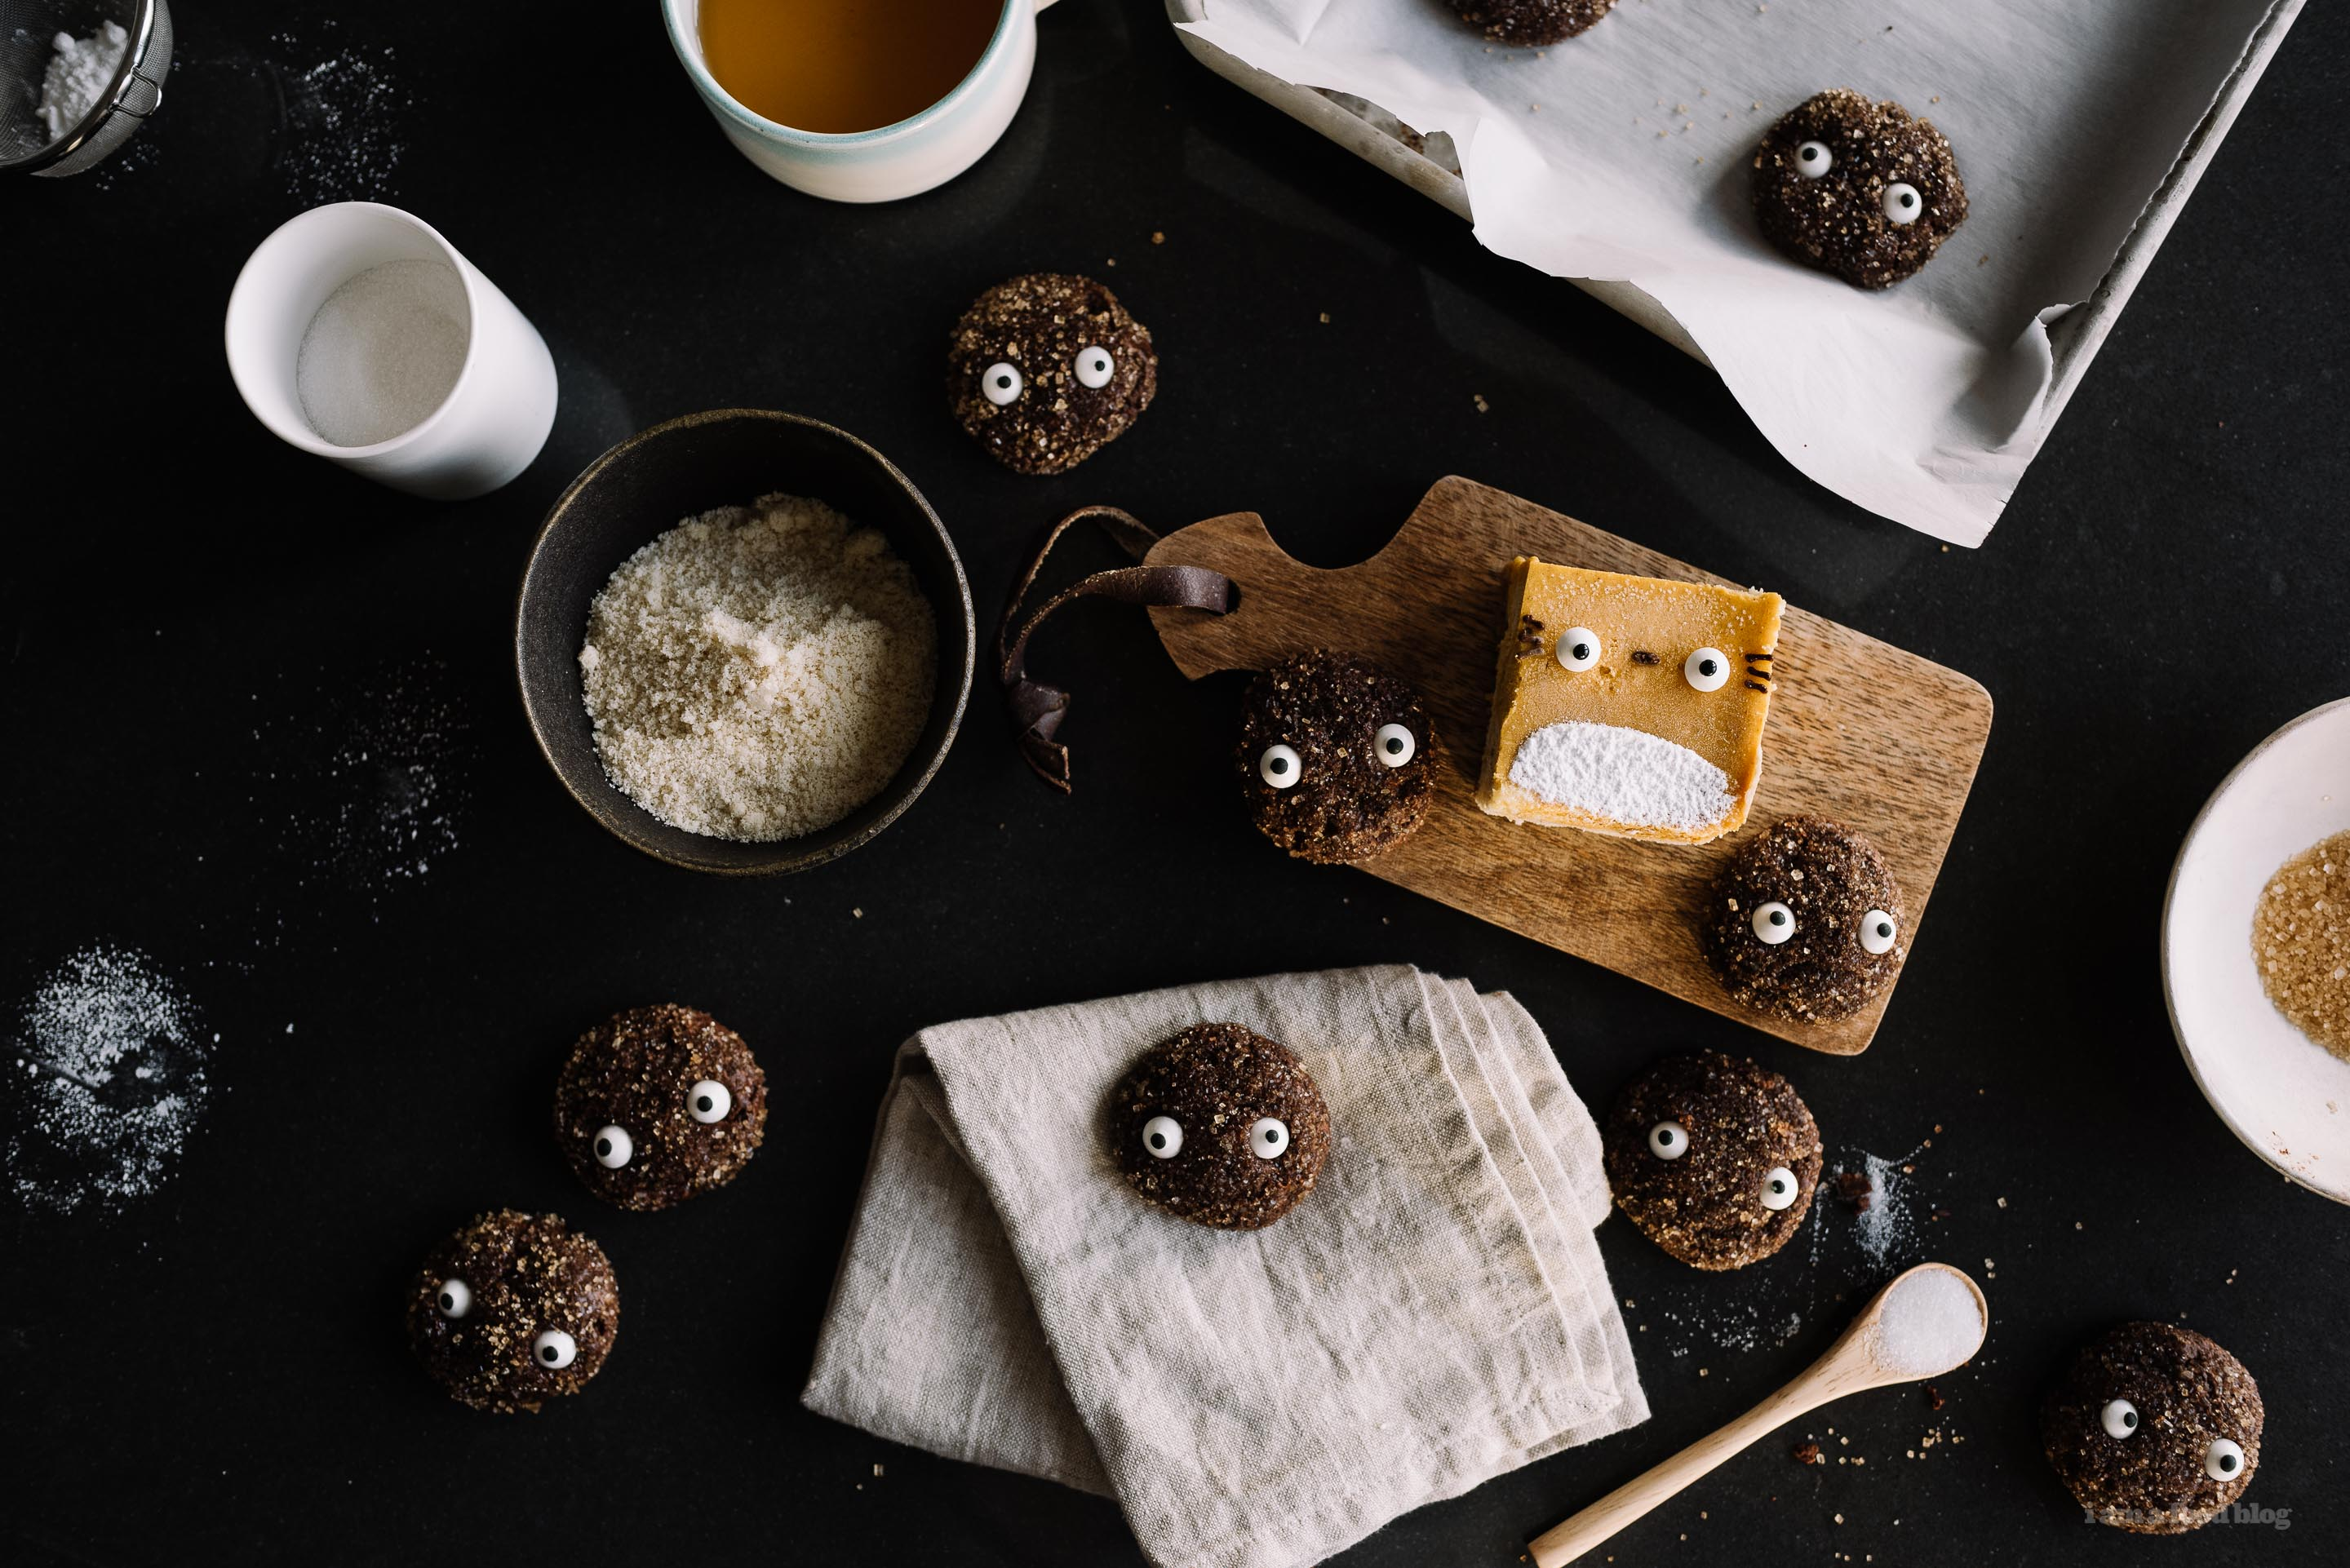 totoro soot sprite chocolate sparkle cookies - www.iamafoodblog.com